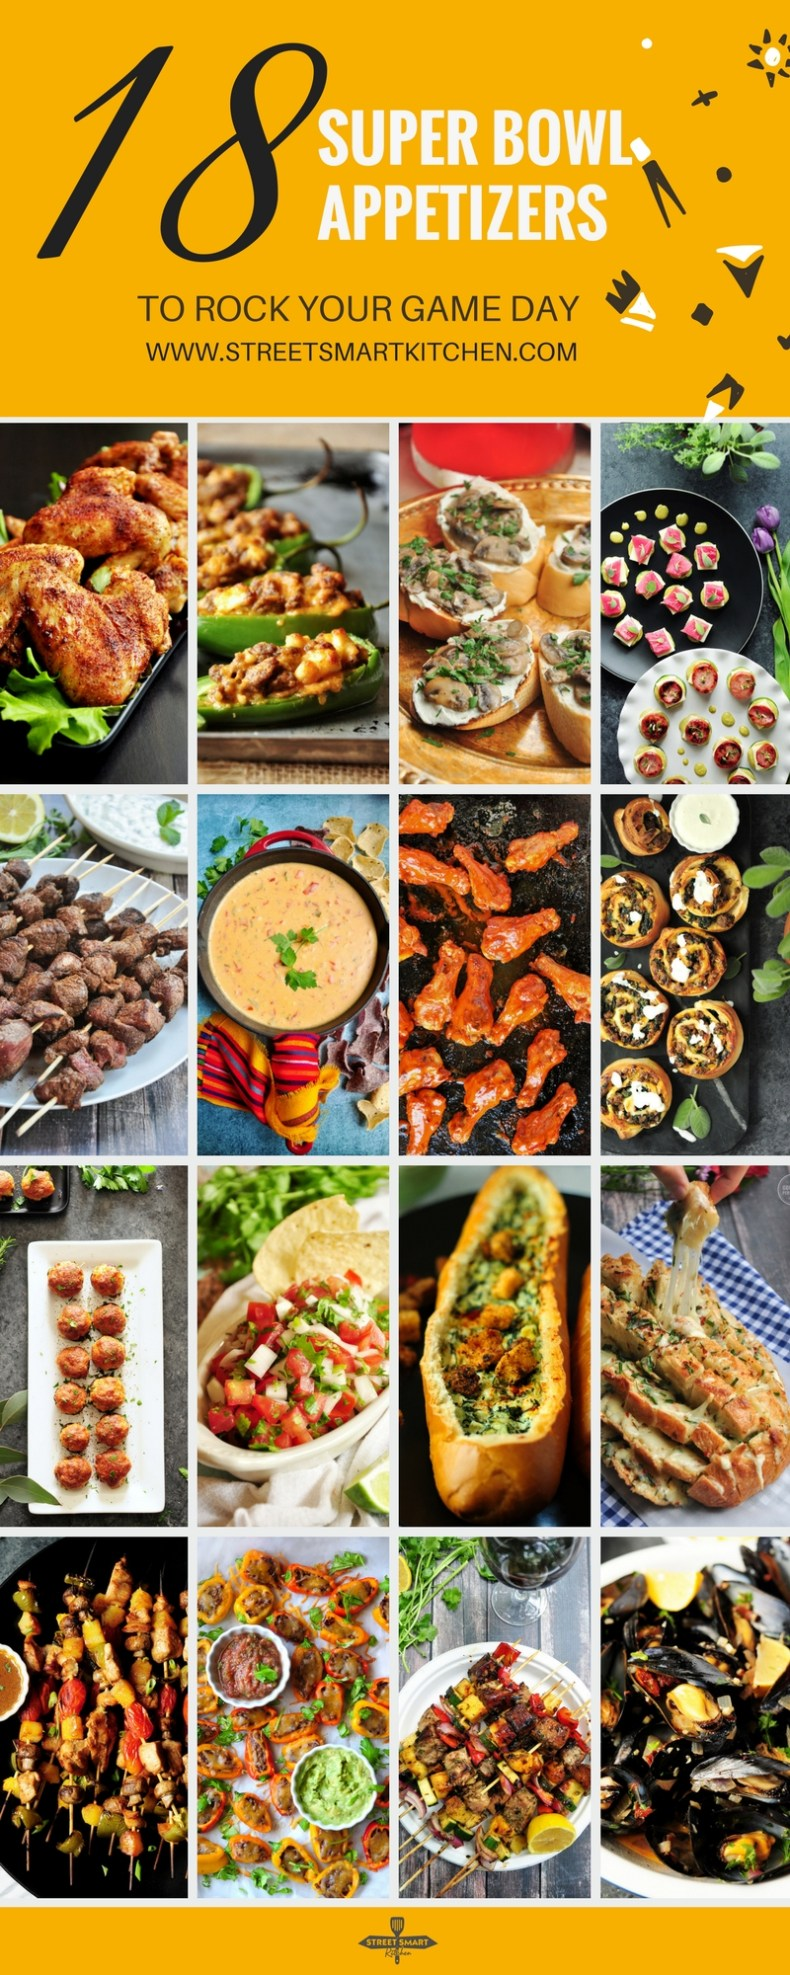 Everyone wants to devoursingle-bite Super Bowl appetizers while they watch the biggame. These awesome recipes will get your guests just as excited about the food as the football.